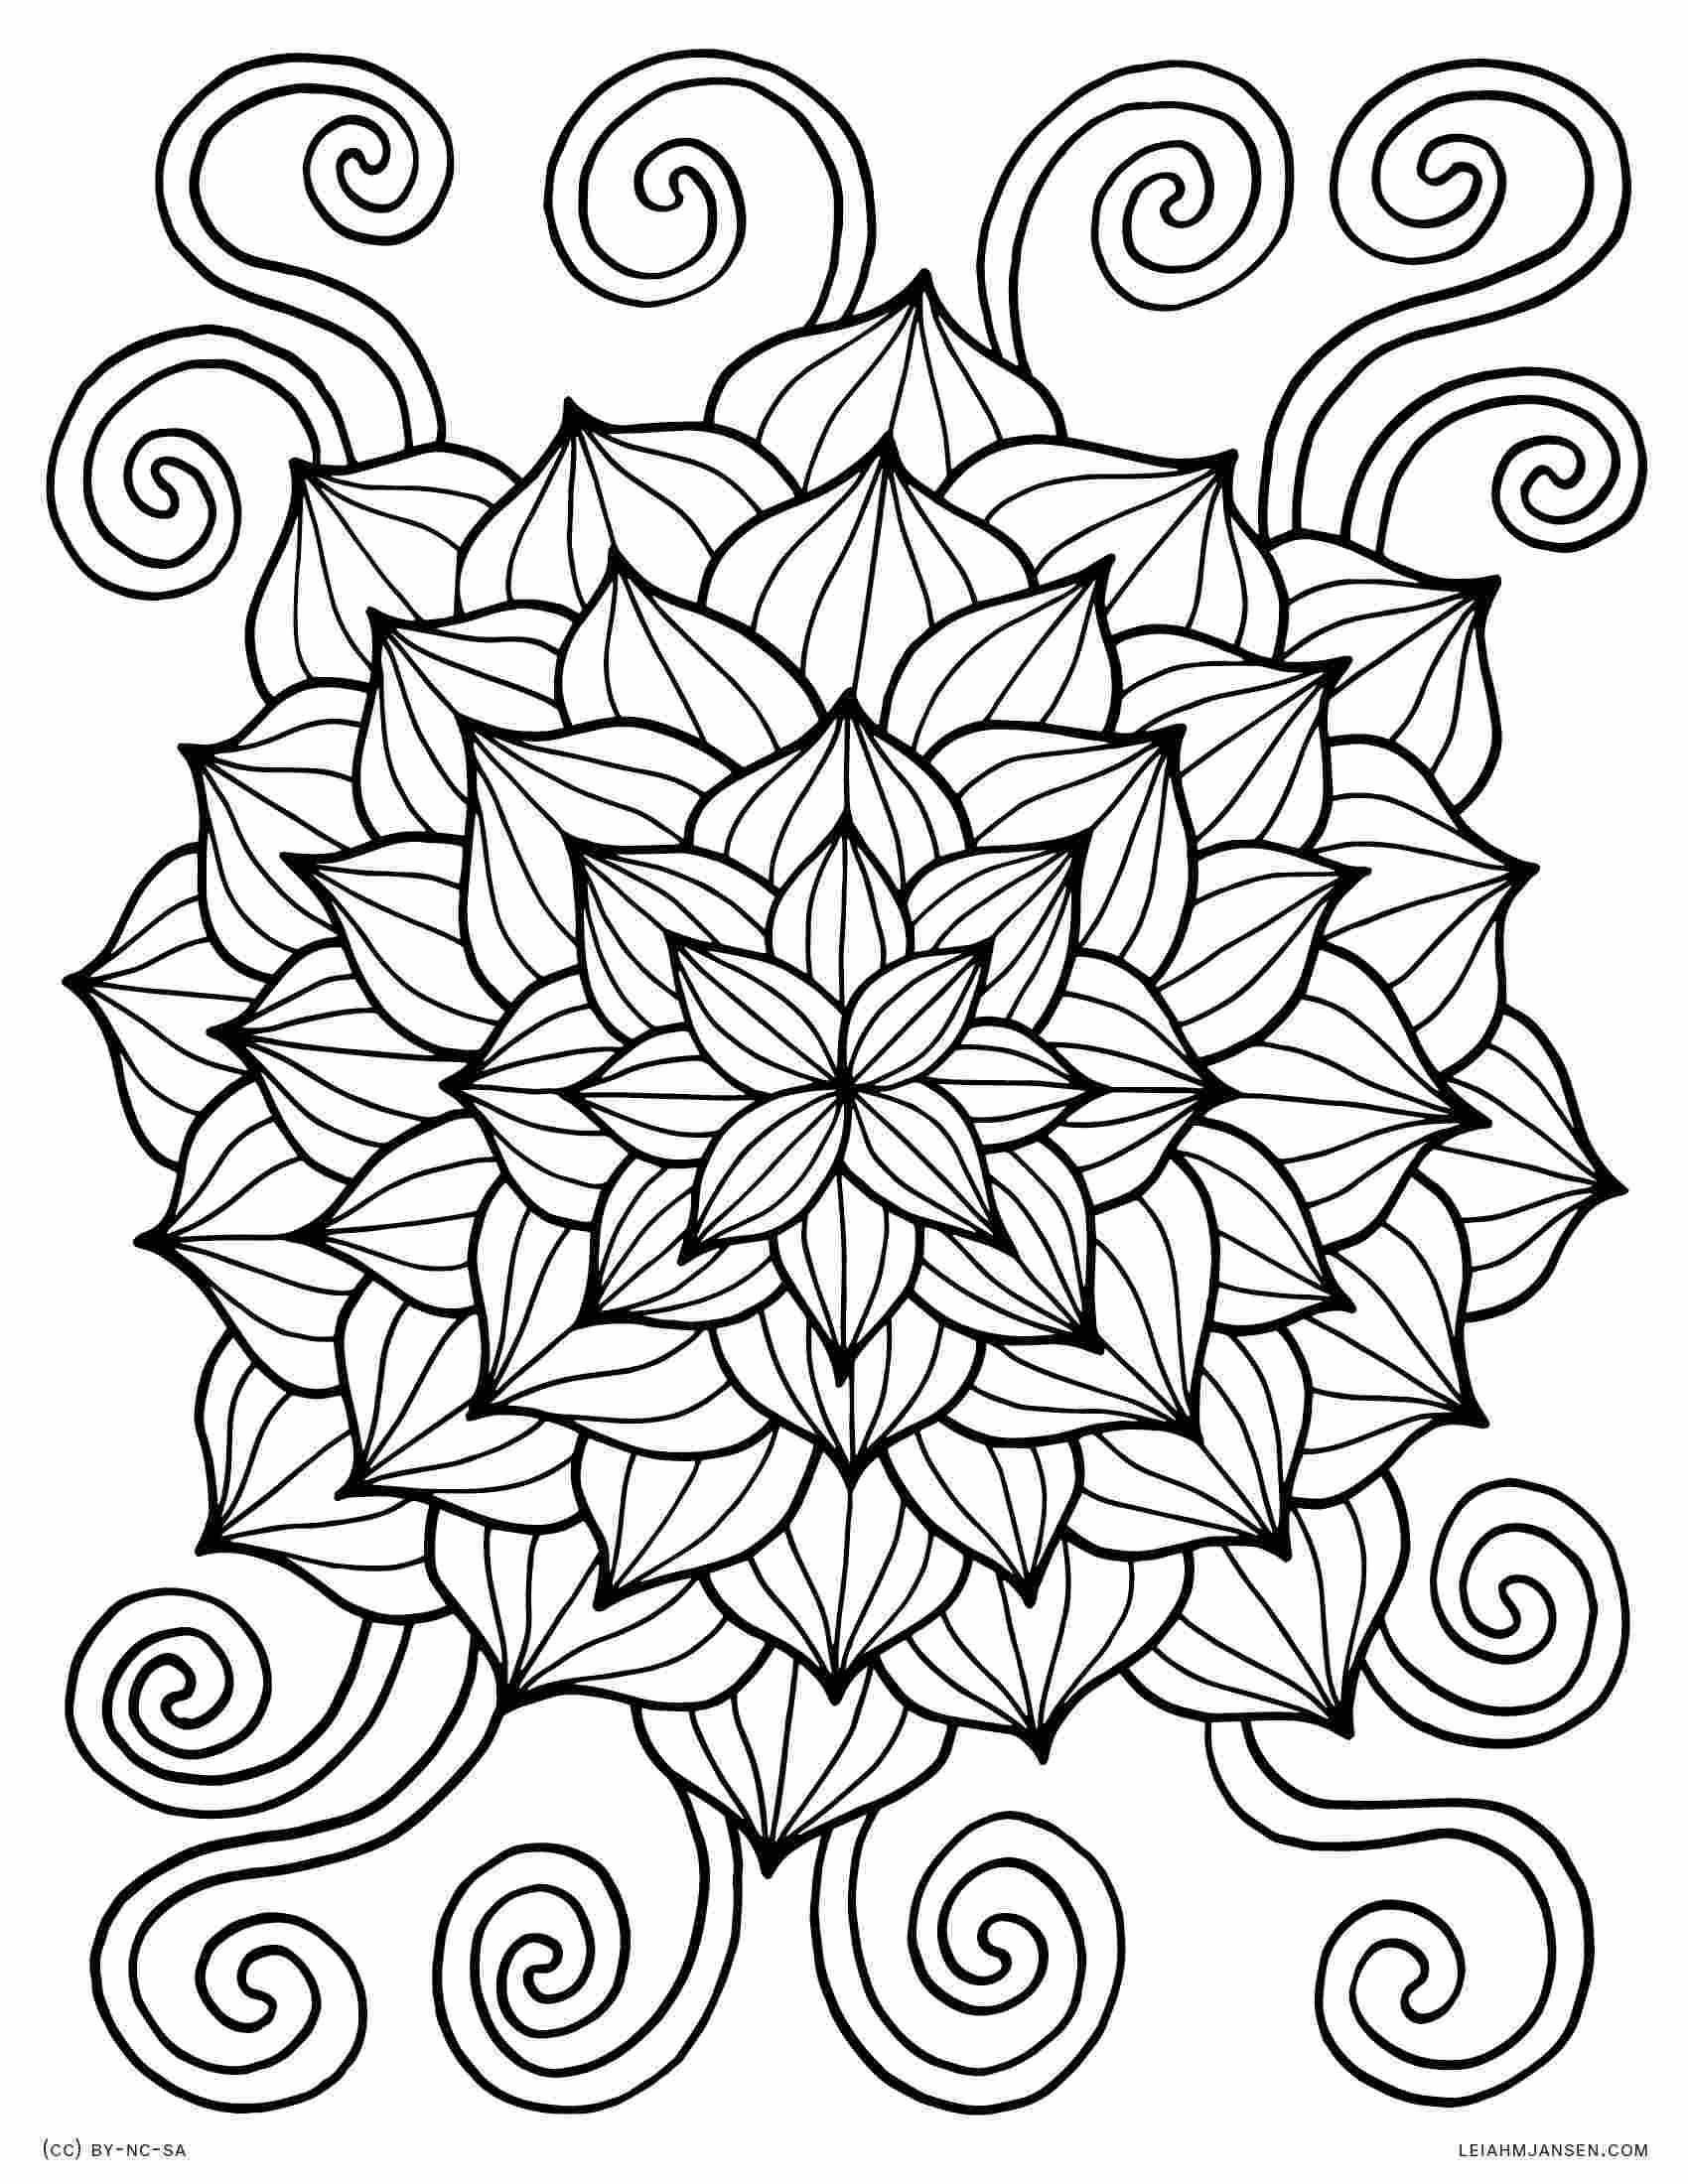 Online Design Coloring Pages Abstract Coloring Pages Spring Coloring Pages Butterfly Coloring Page [ 2200 x 1700 Pixel ]